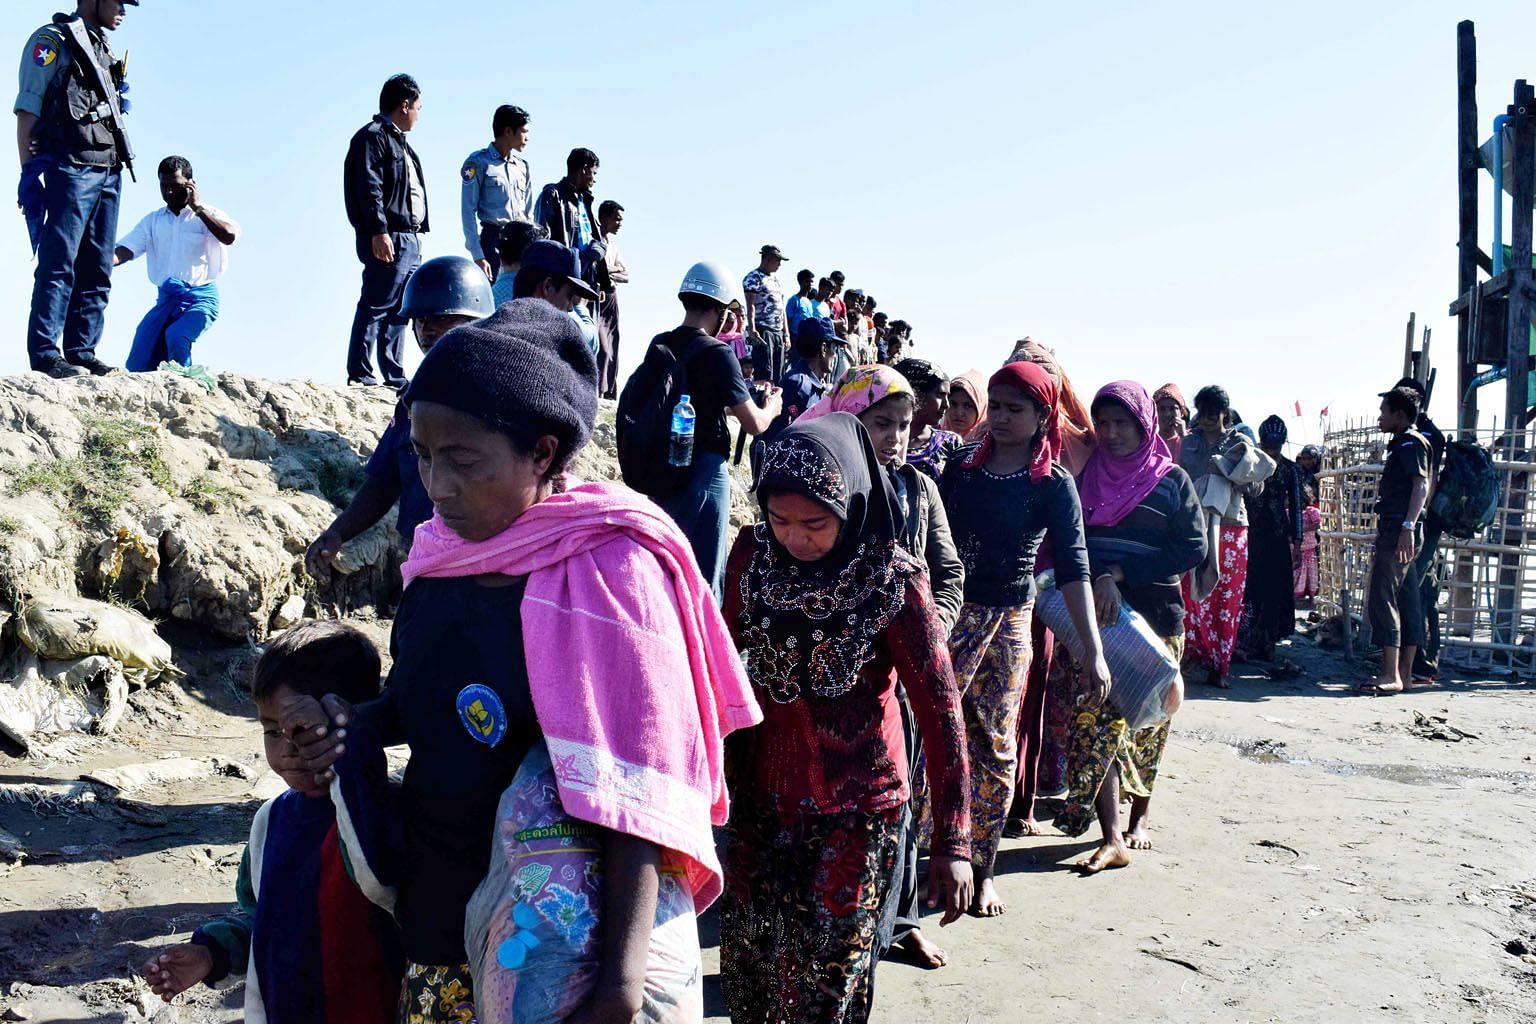 """Myanmar navy personnel escorting Rohingya Muslims back to their camp in Sittwe, Rakhine state, on Nov 30. The US' Lower House of Congress also accuses the Myanmar military of """"crimes against humanity""""."""